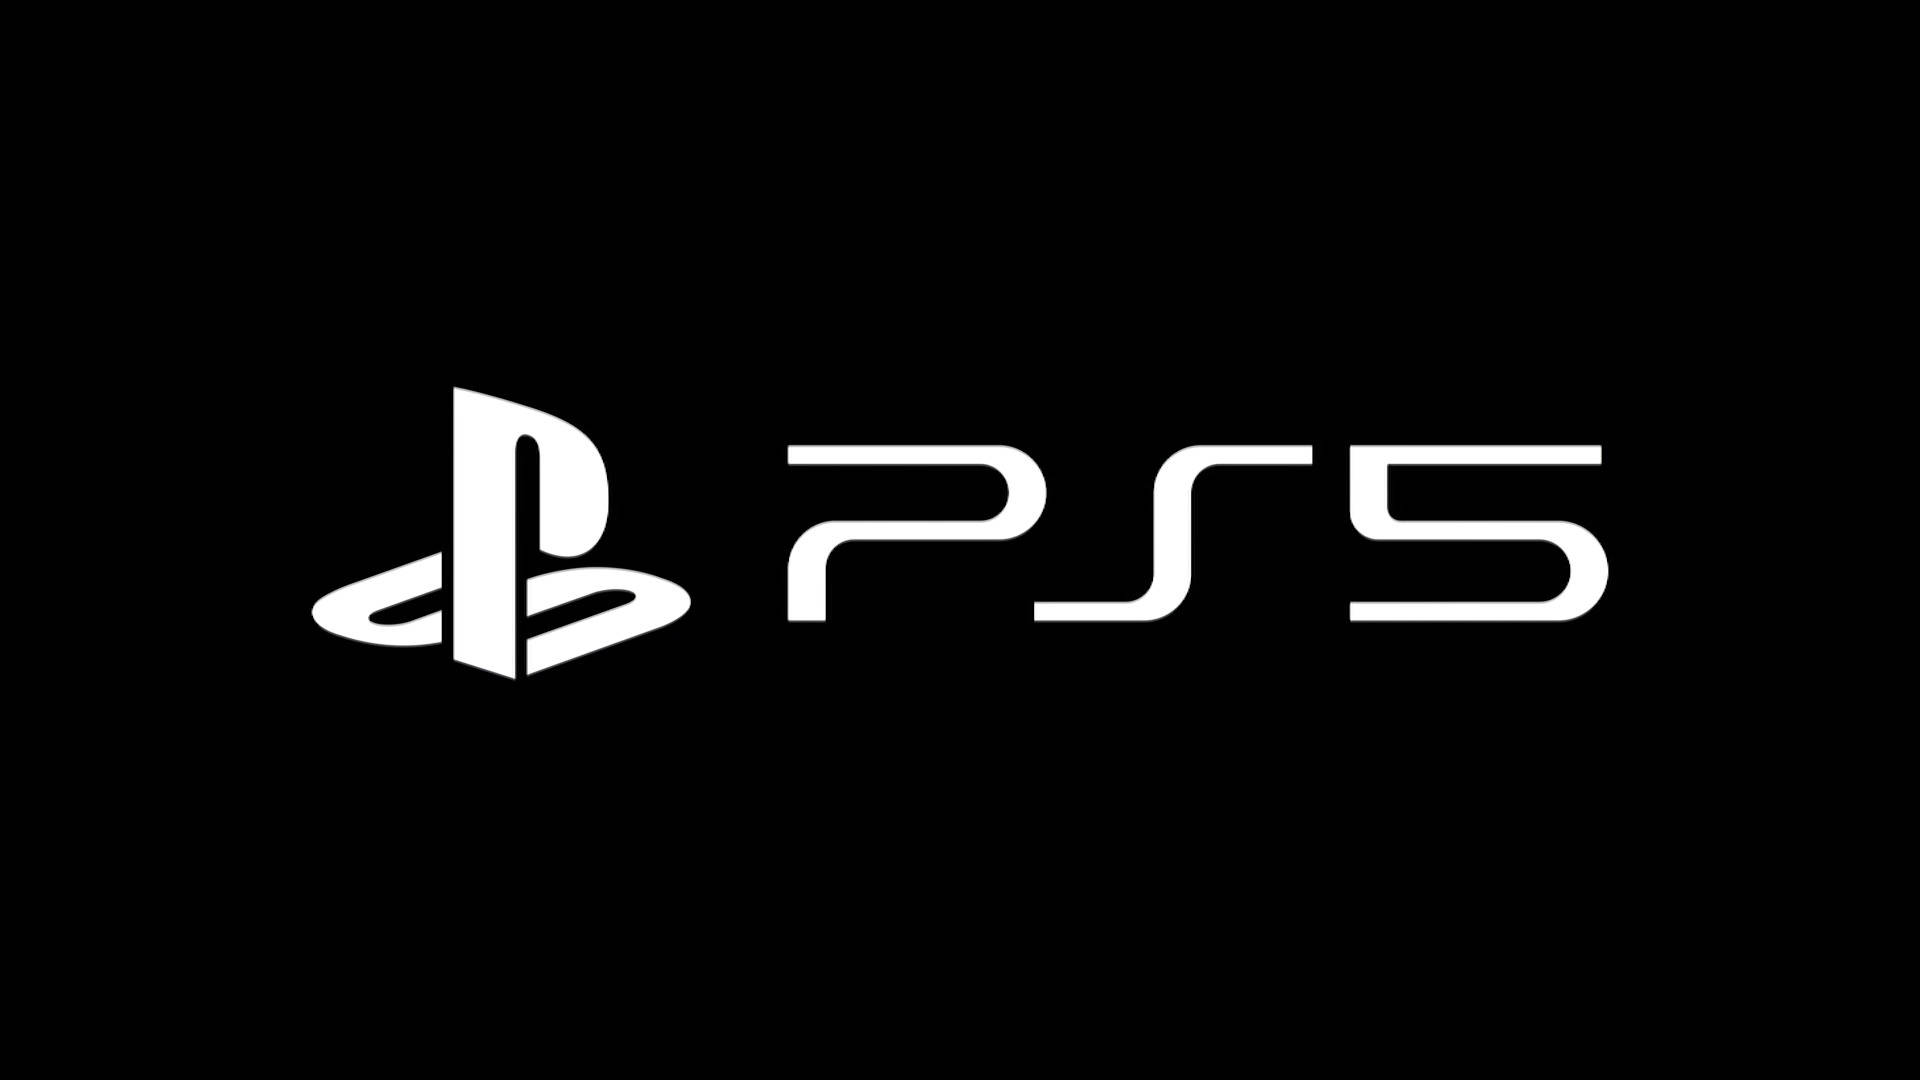 PS5 PlayStation 5 Logo nero